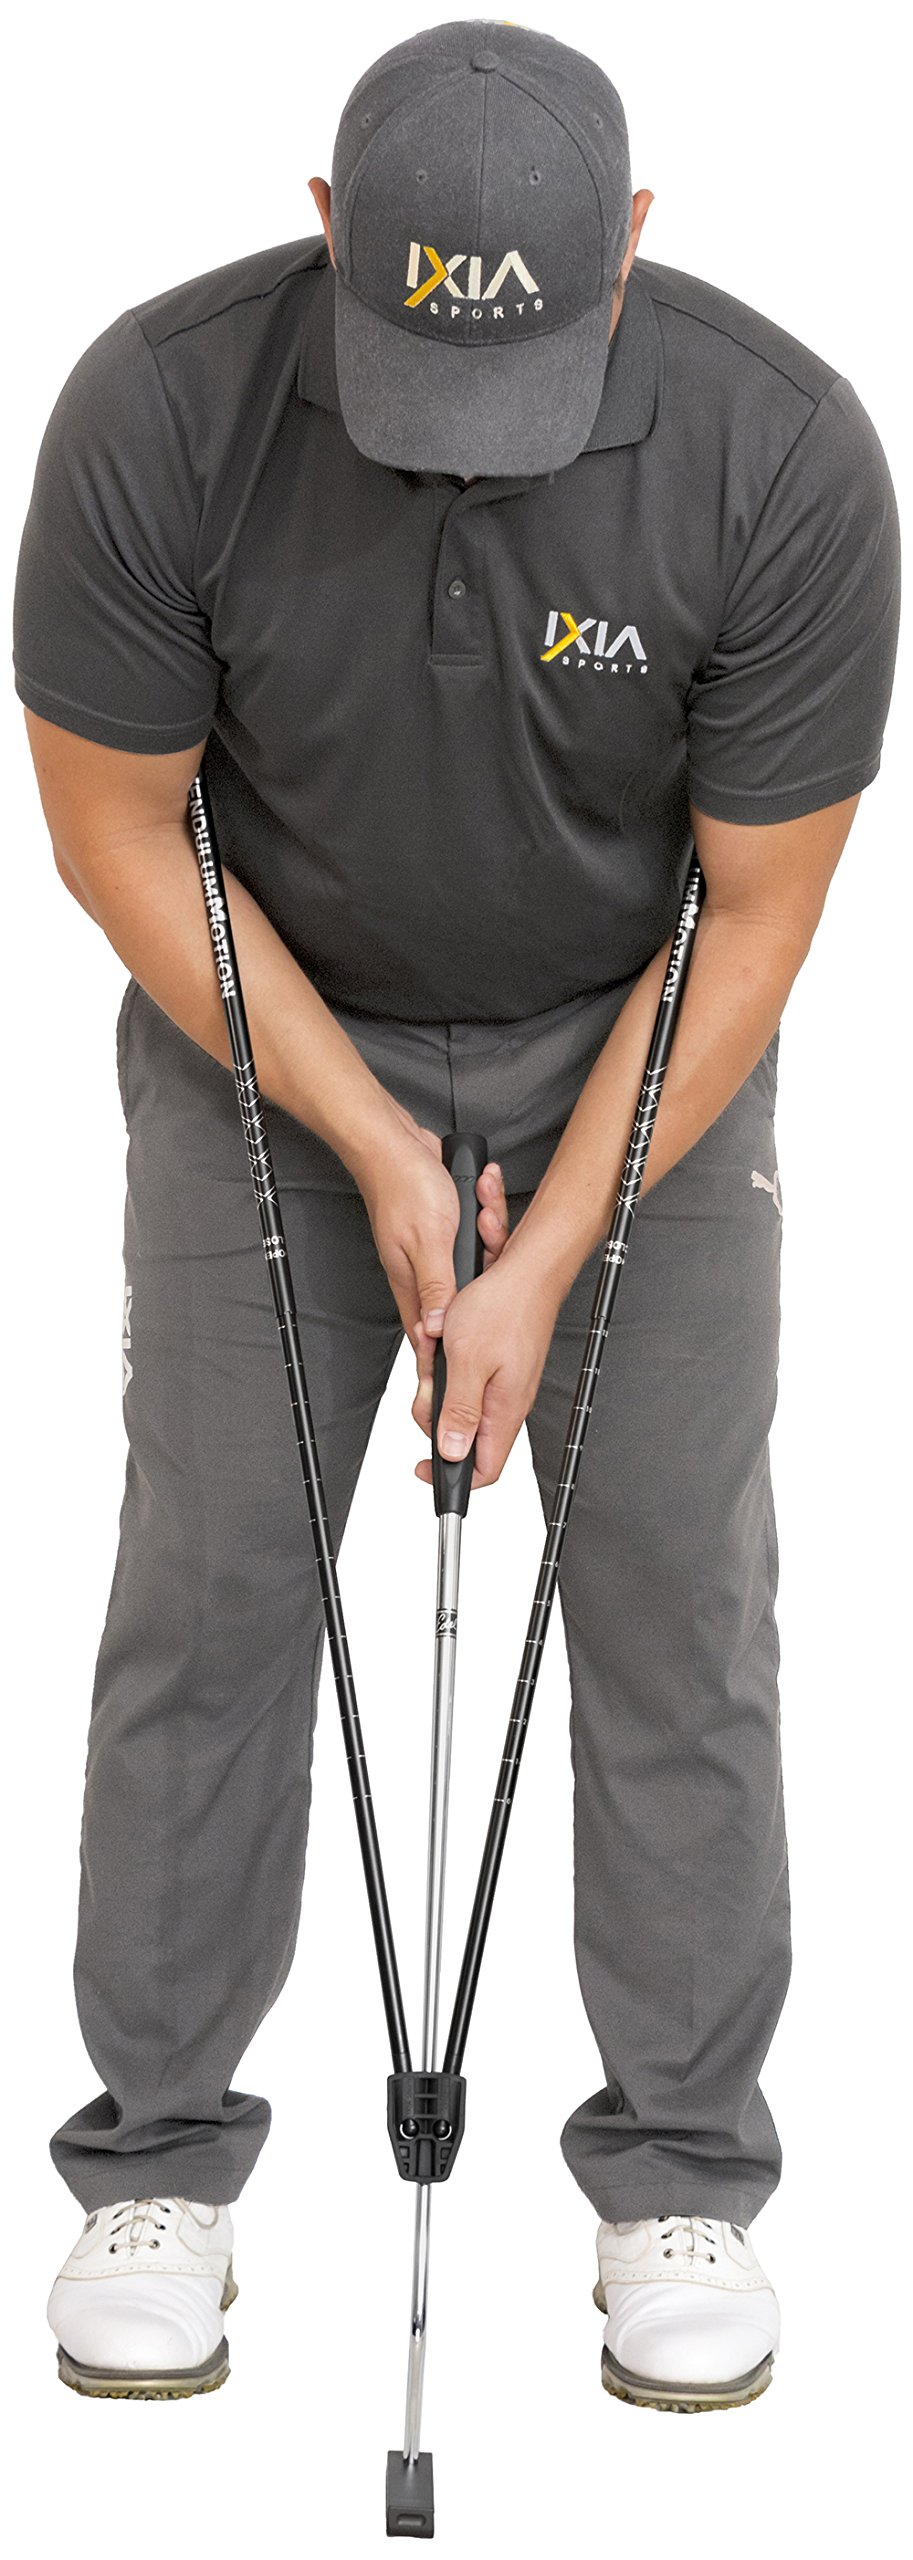 IXIA Sports True Pendulum Motion Golf Putting Trainer - Fits Any Putter - Detachable, Adjustable Length Alignment Rods - Promotes Perfect Posture - For ALL Levels, Juniors & Adult by IXIA Sports (Image #1)